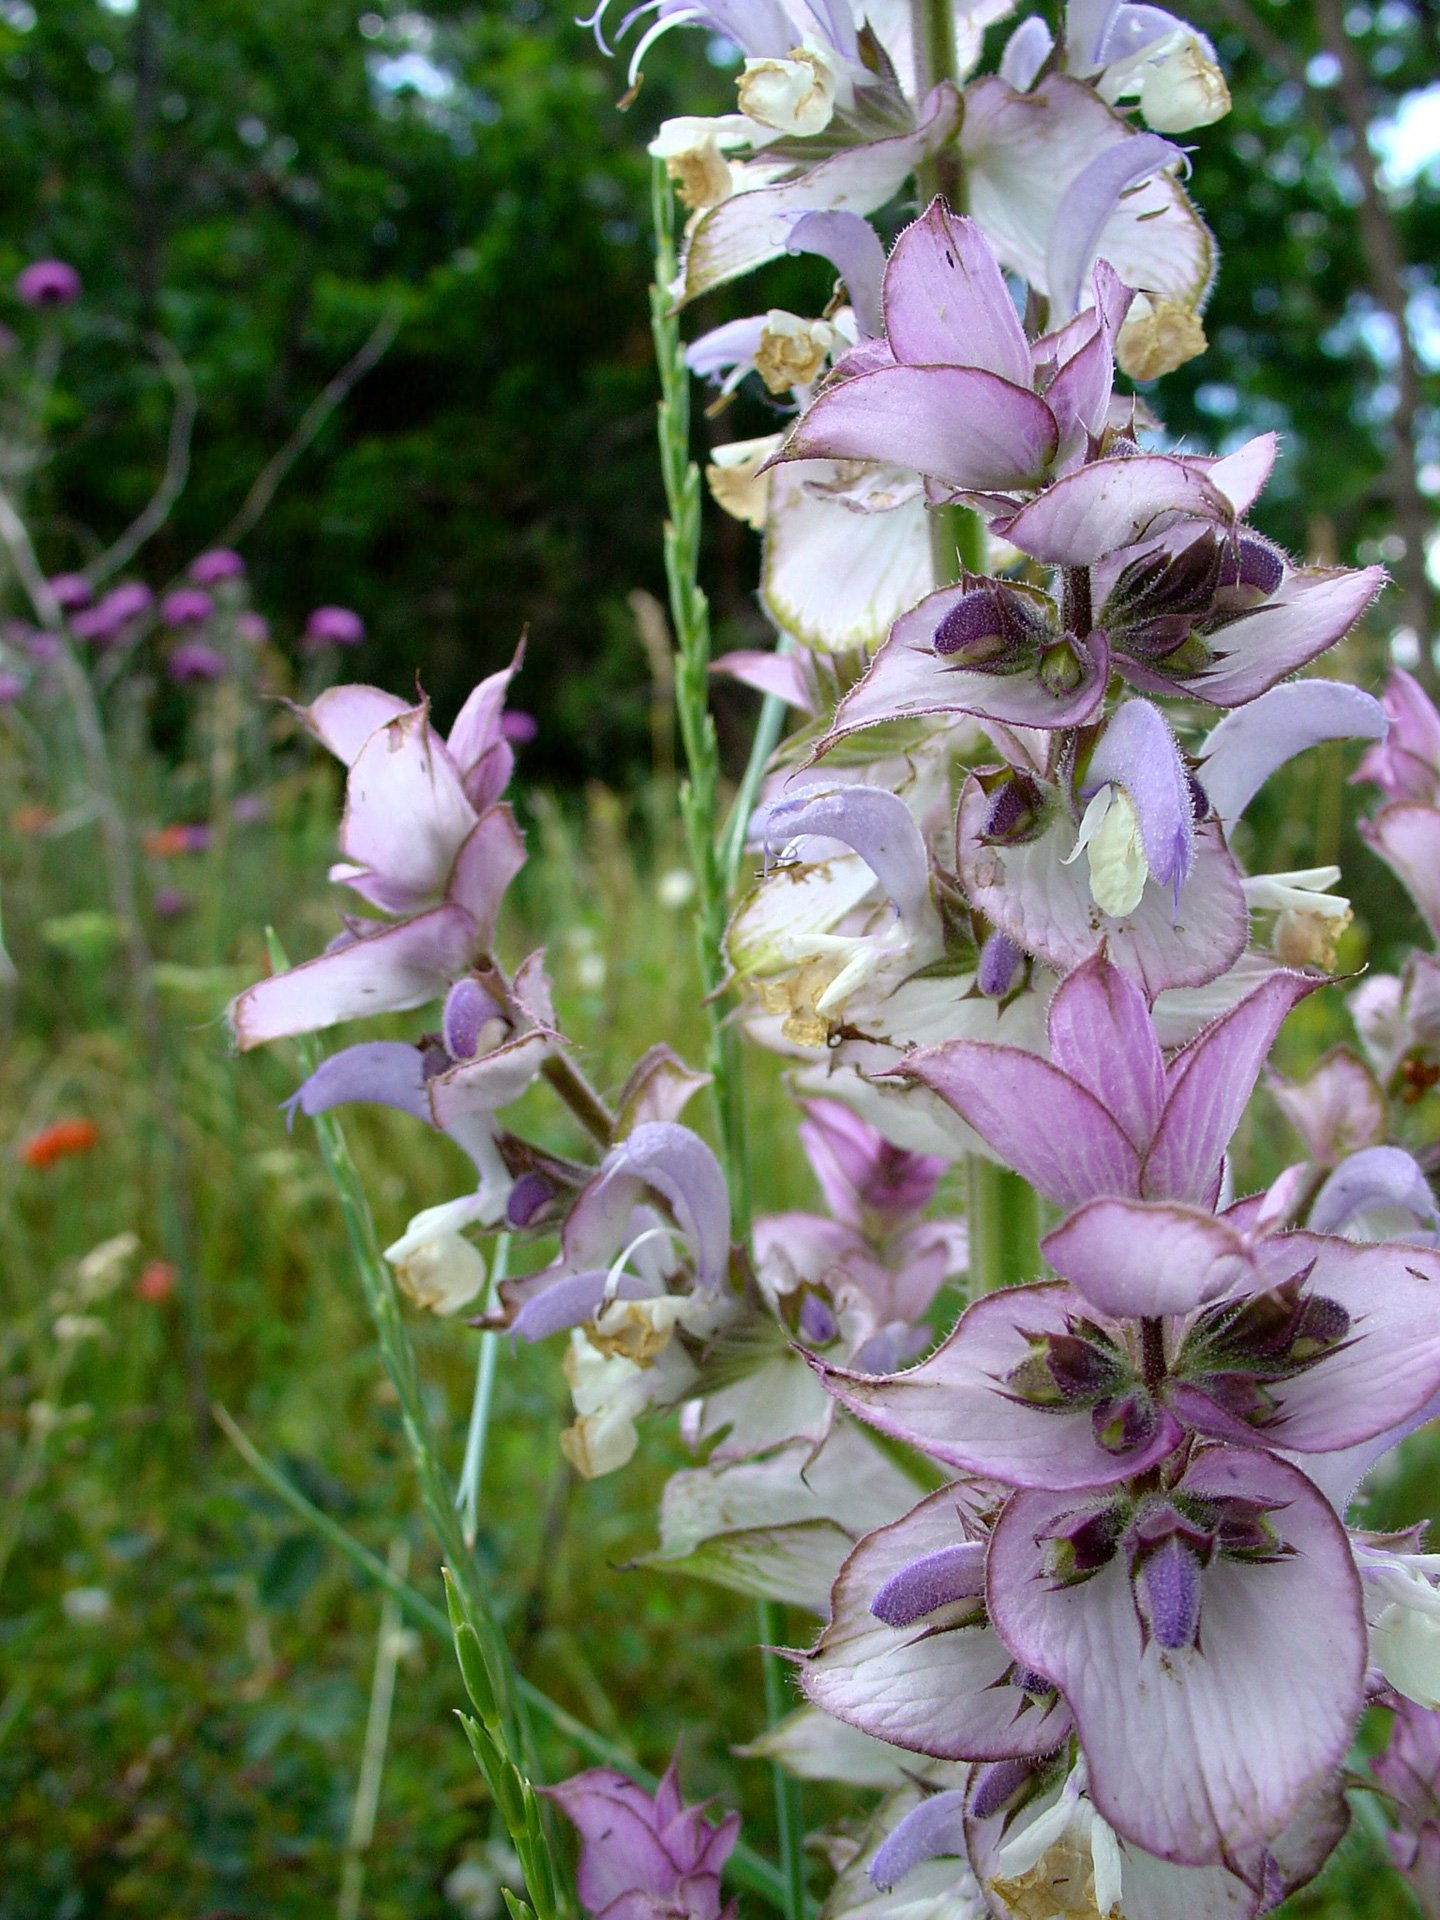 clary sage plant and flowers